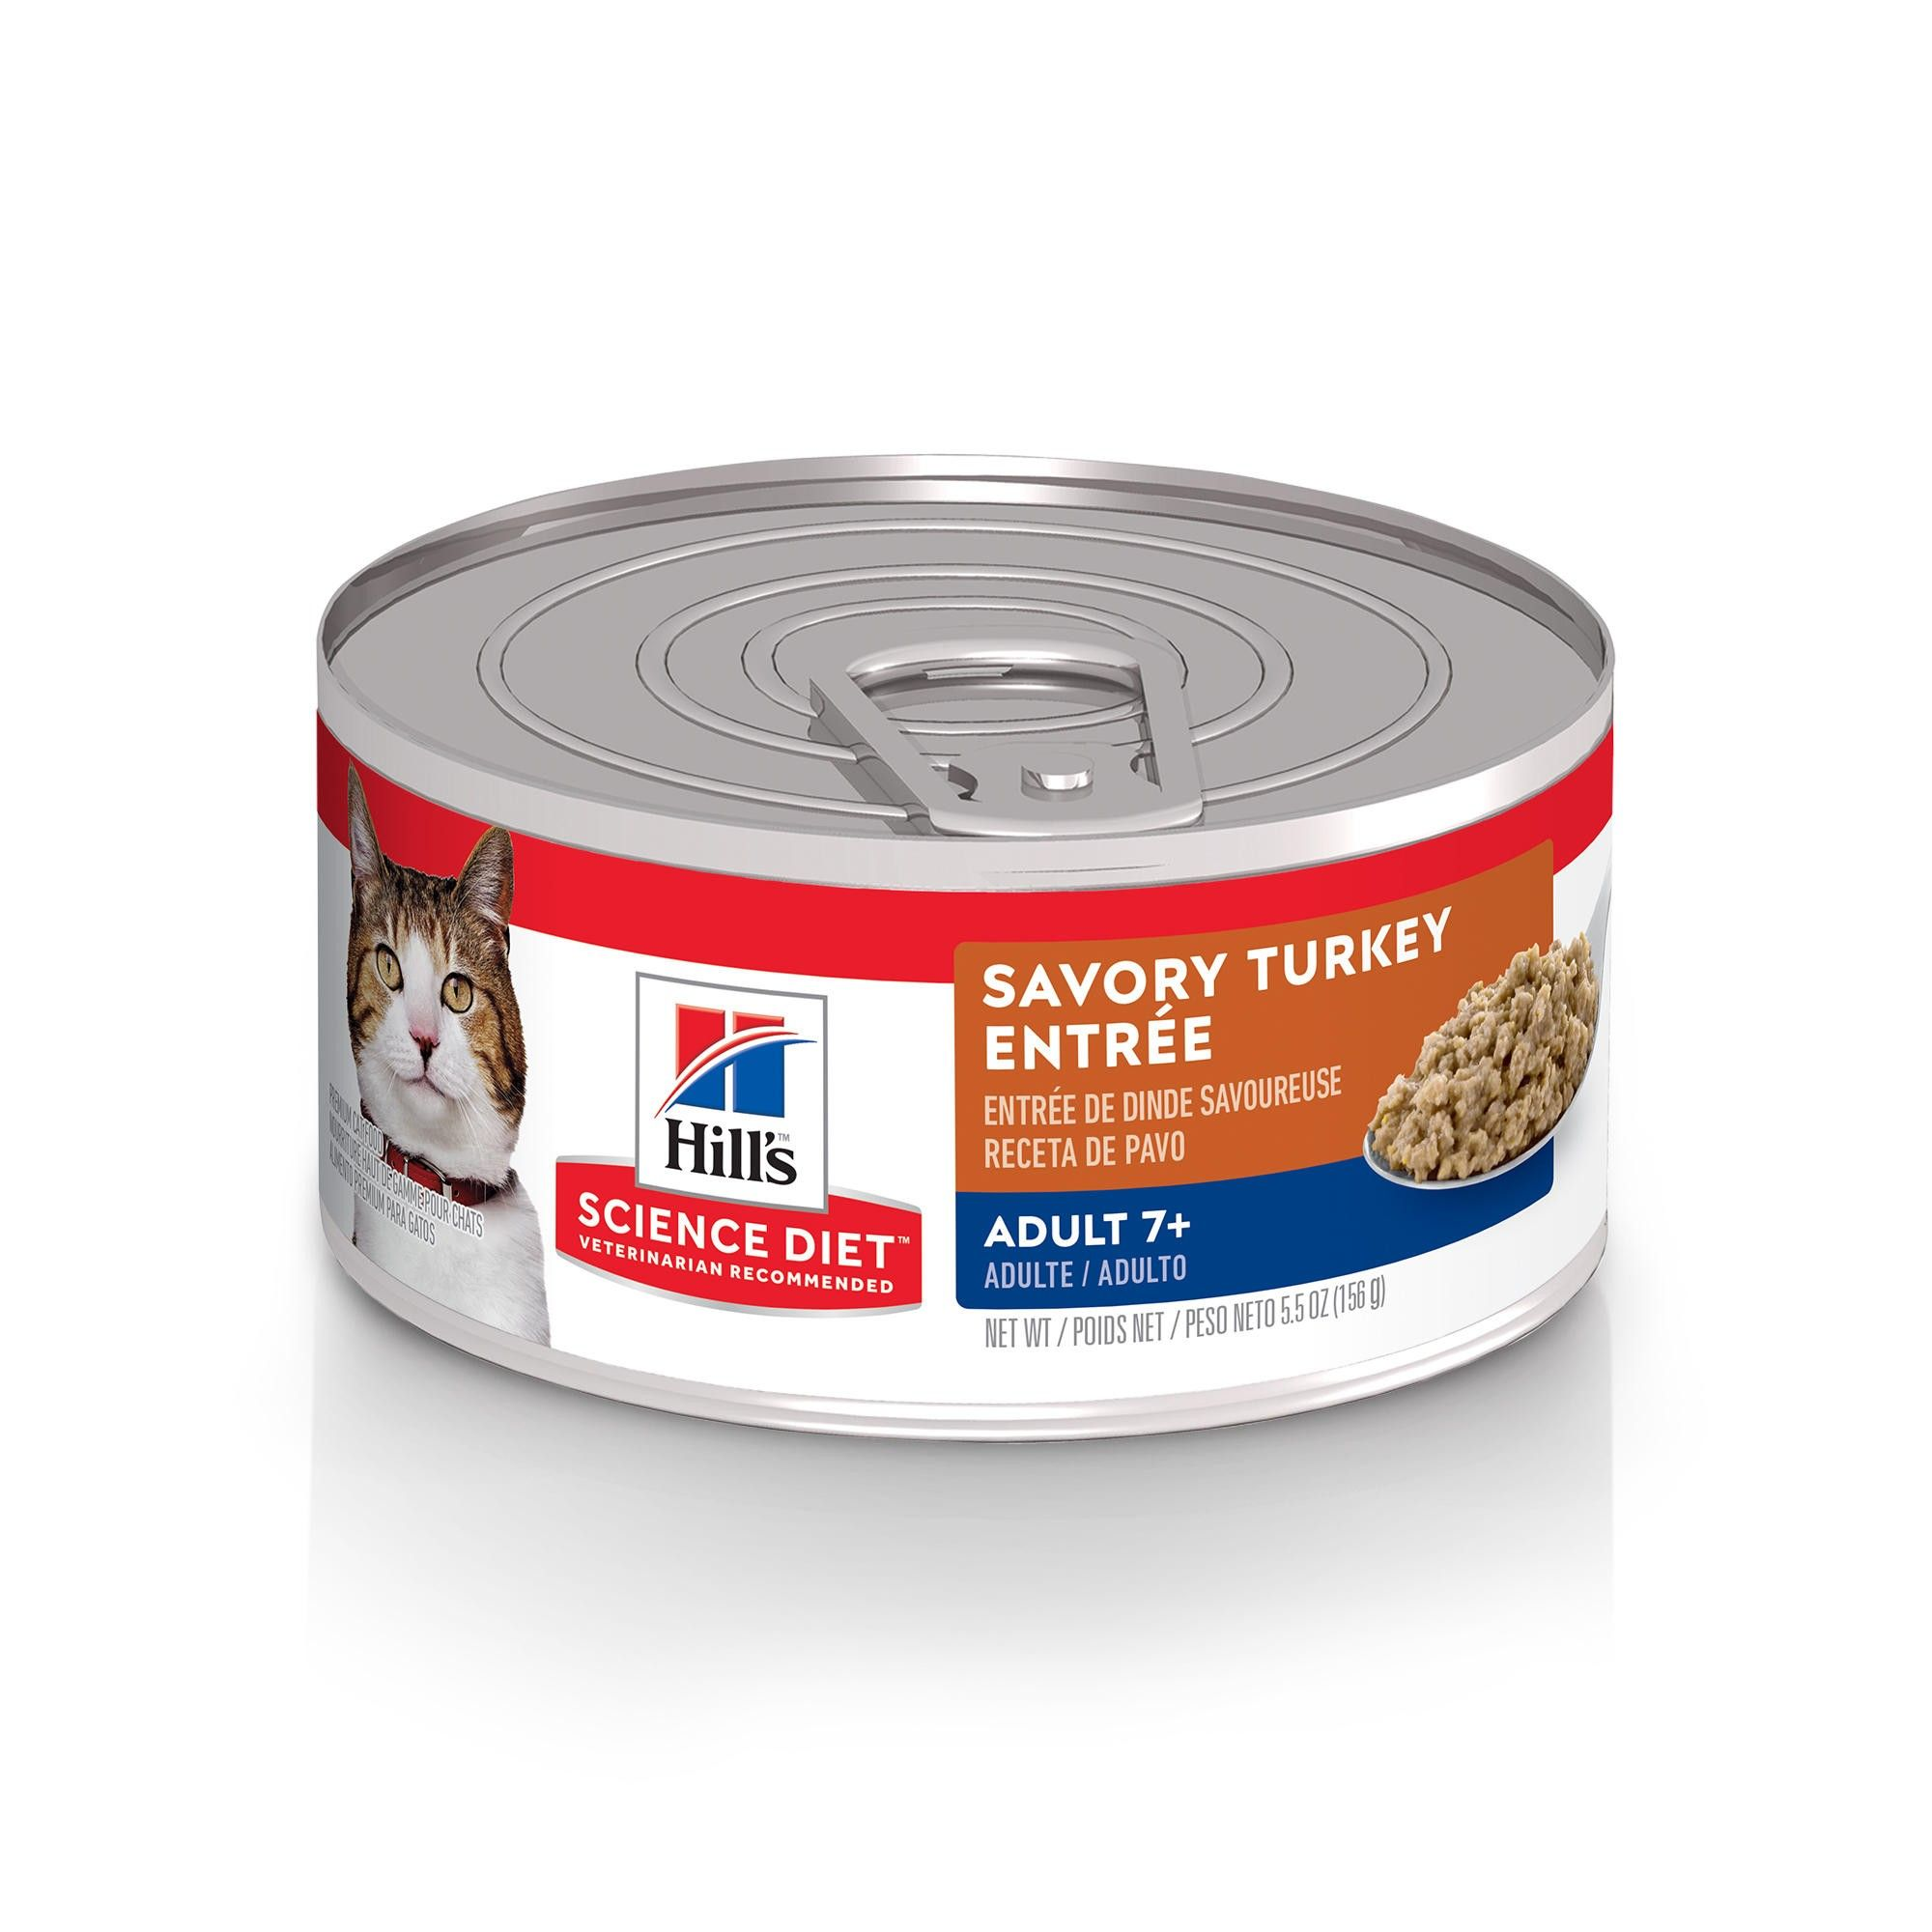 Hill's Science Diet Adult 7+ Savory Turkey Entree Canned Cat Food Image